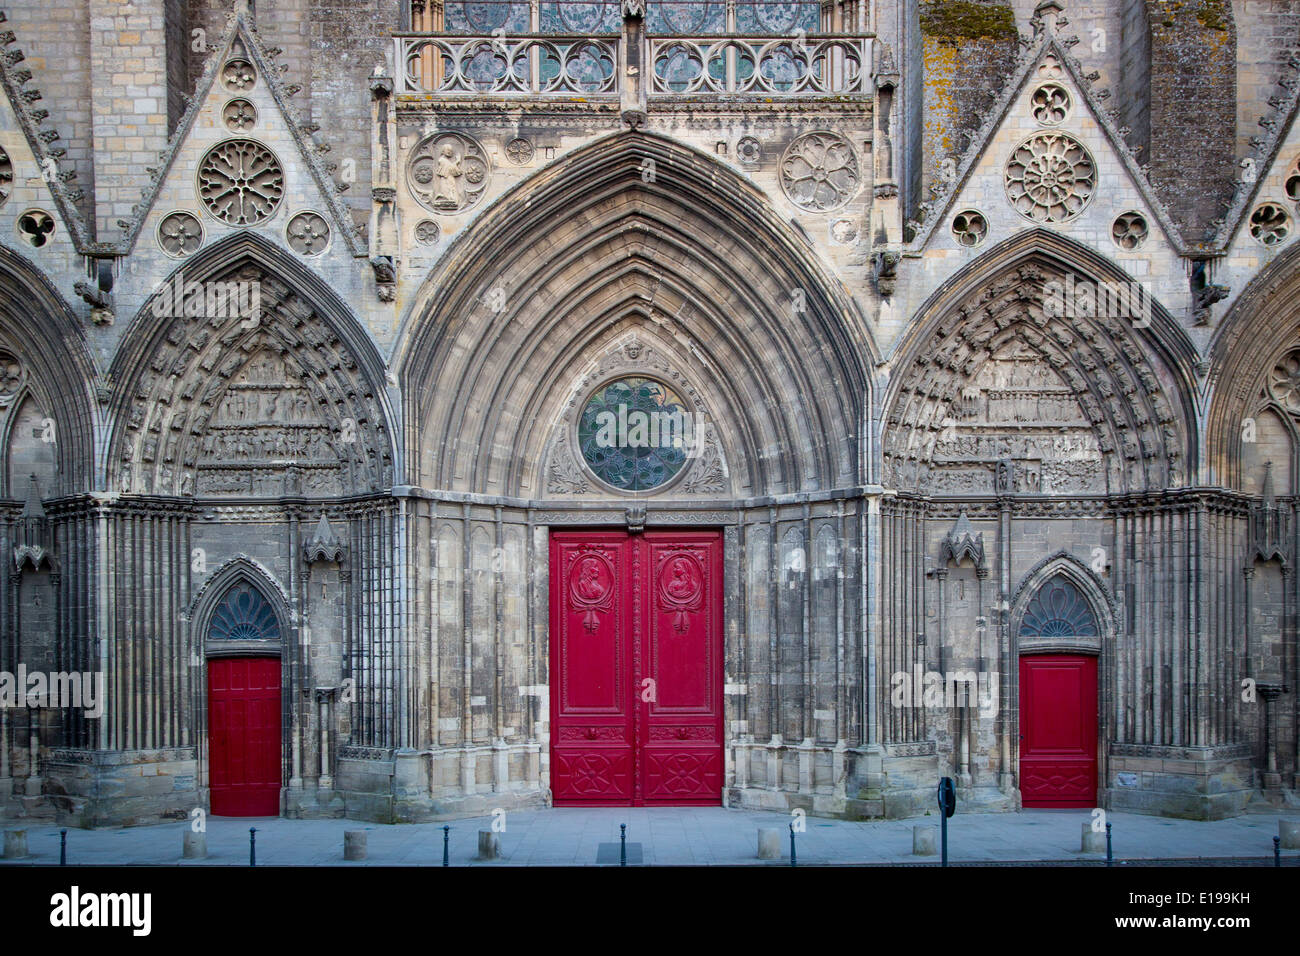 Front facade and doors to Notre Dame de Bayeux Church, Bayeux, Normandy France - Stock Image